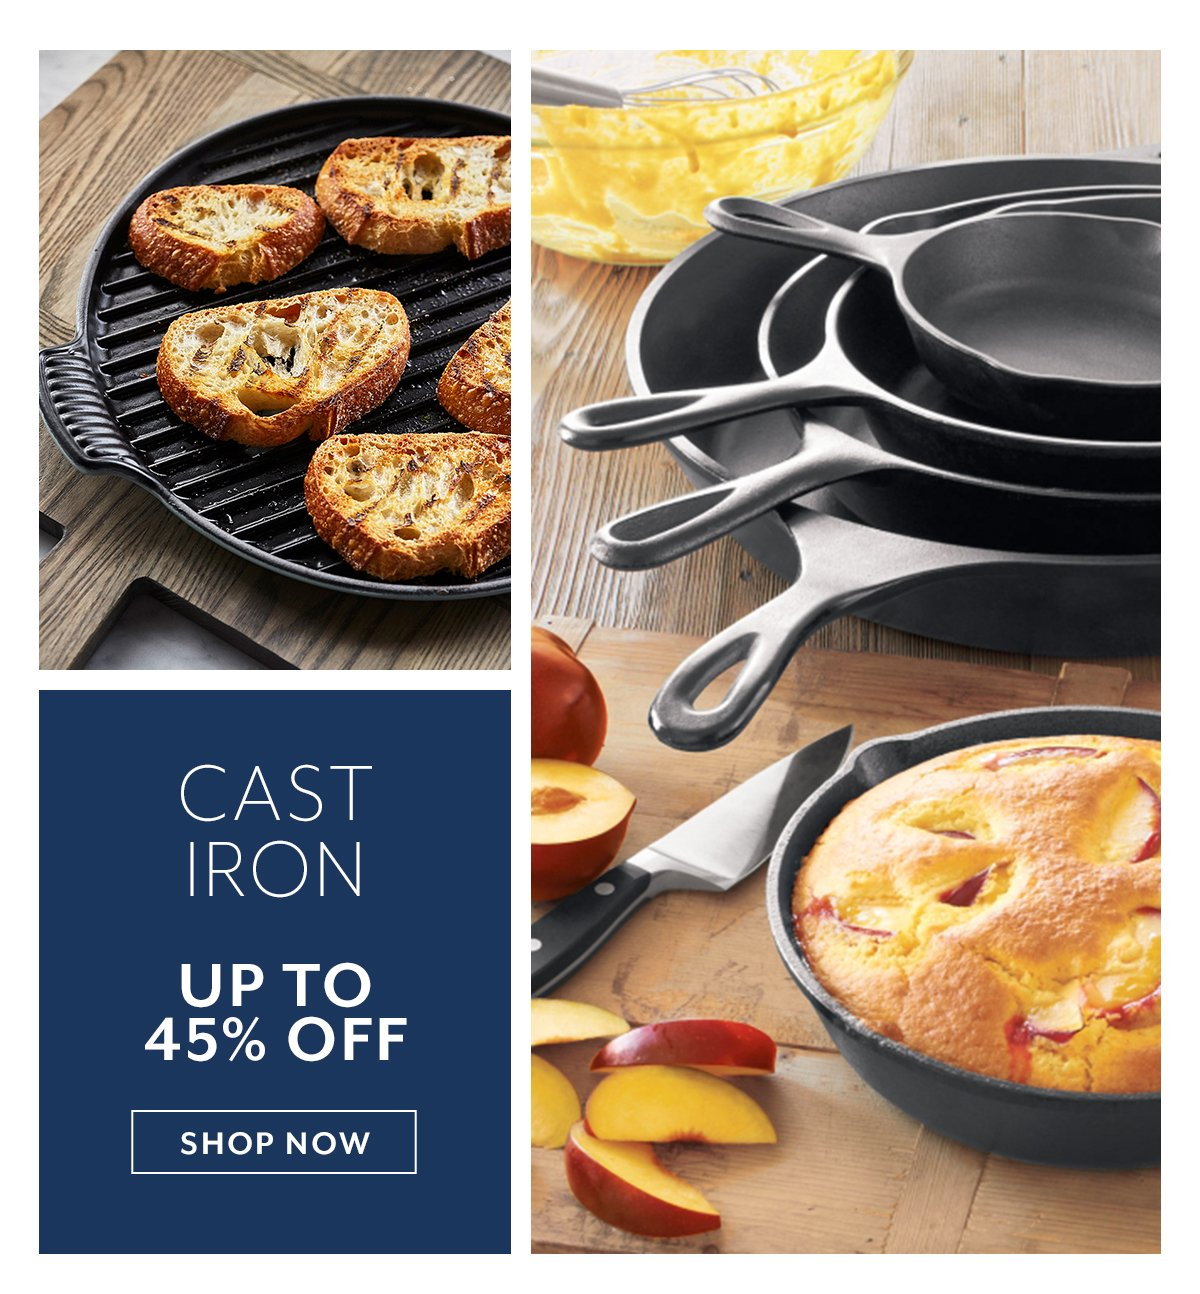 Cast Iron up to 45% off